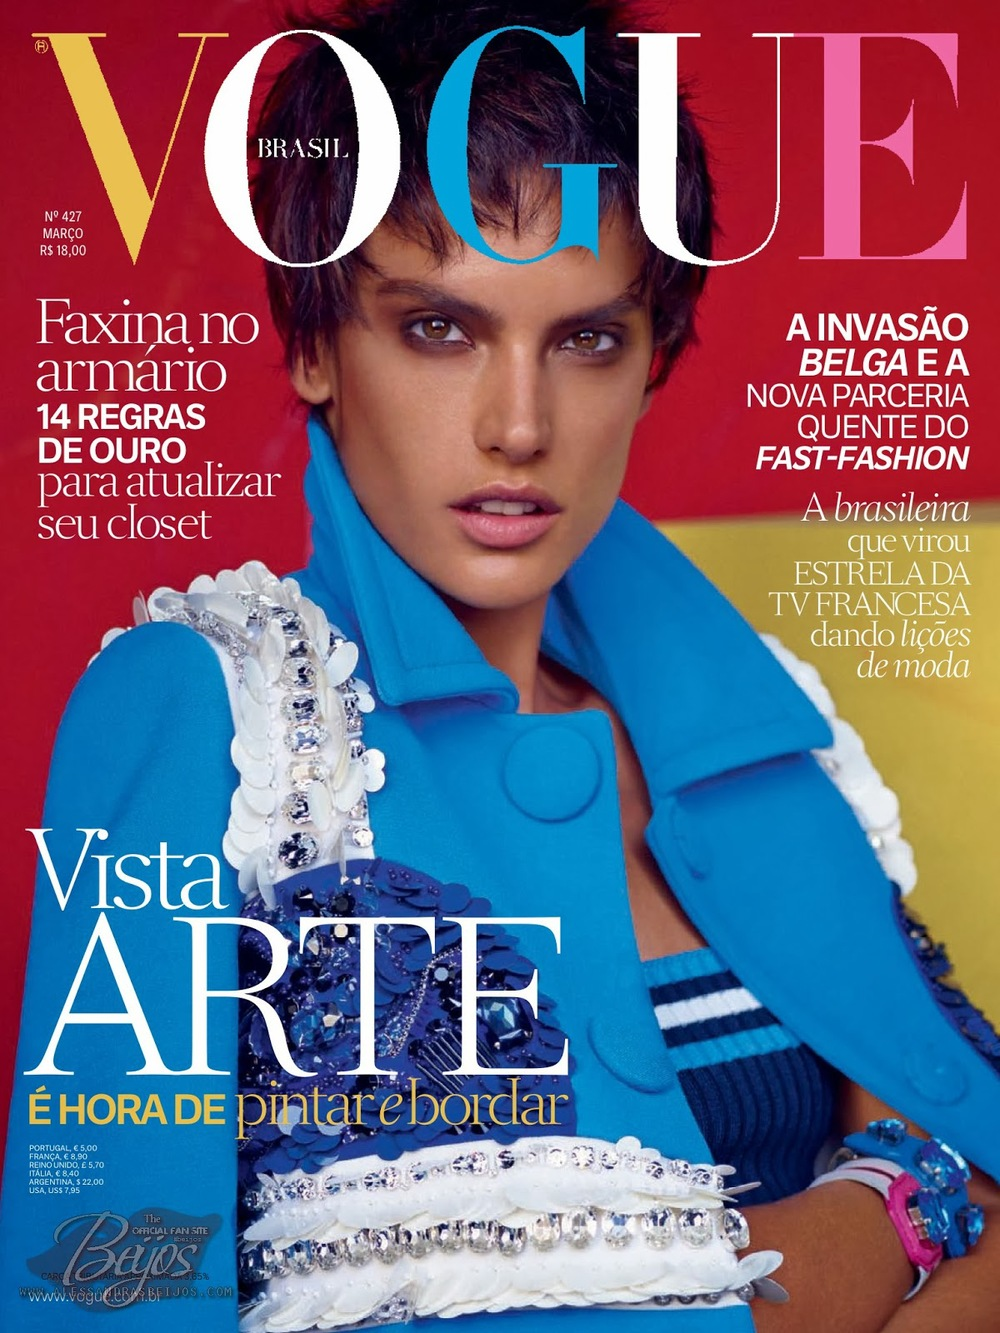 Alessandra-Ambrosio-by-Mariano-Vivanco-for-Vogue-Brazil-March-2014 (1).jpg